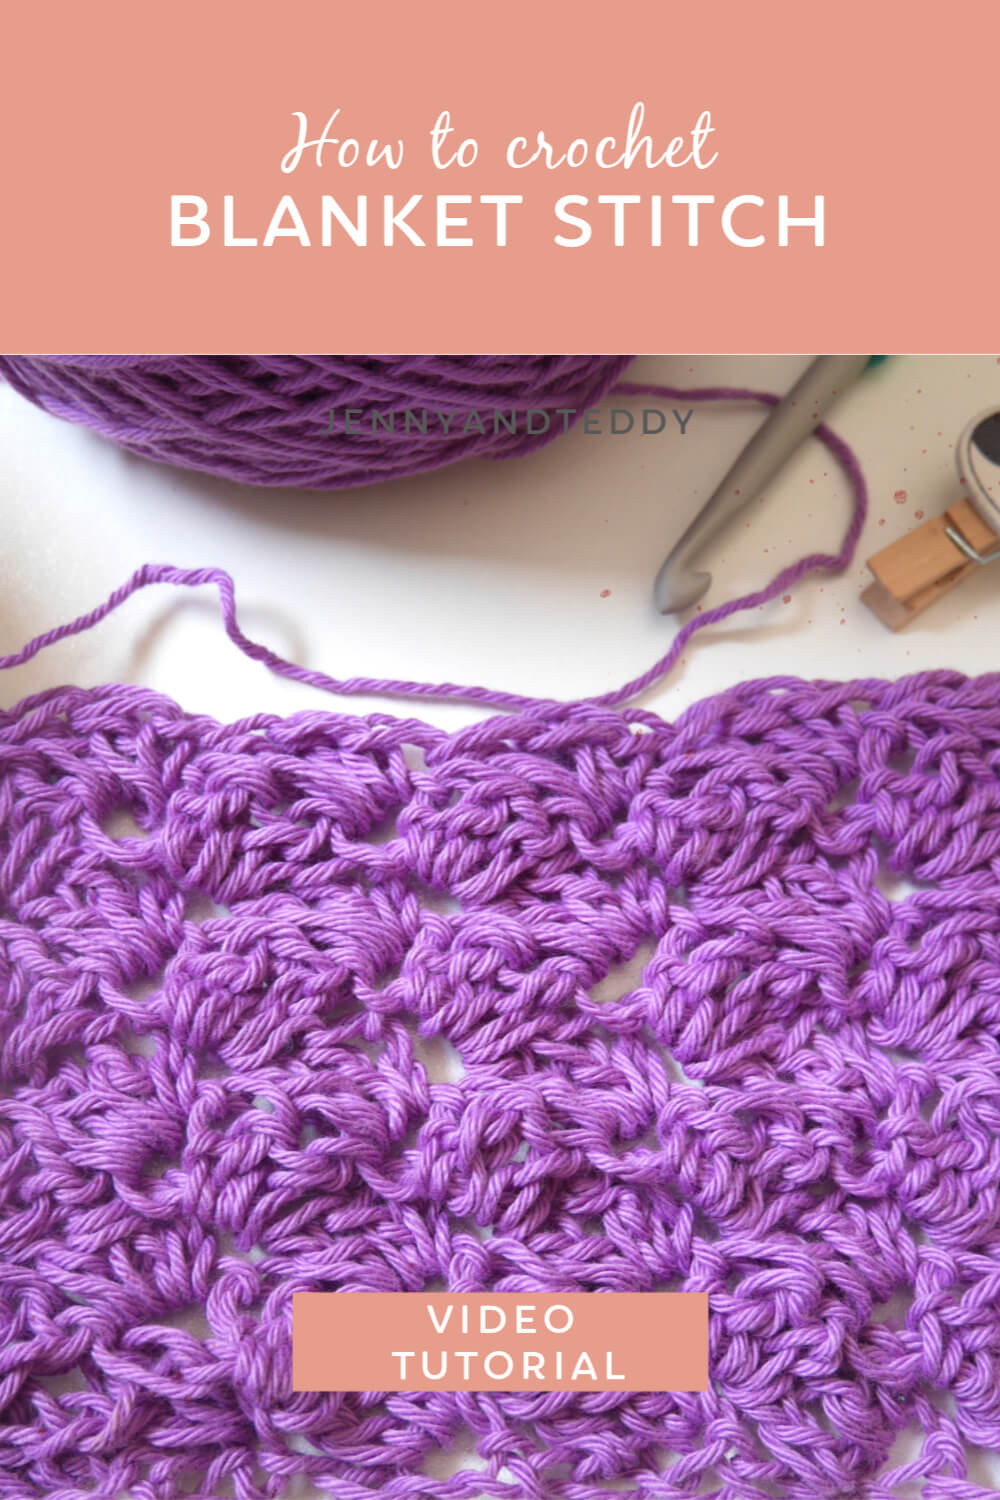 crochet blanket stitch with video tutorial